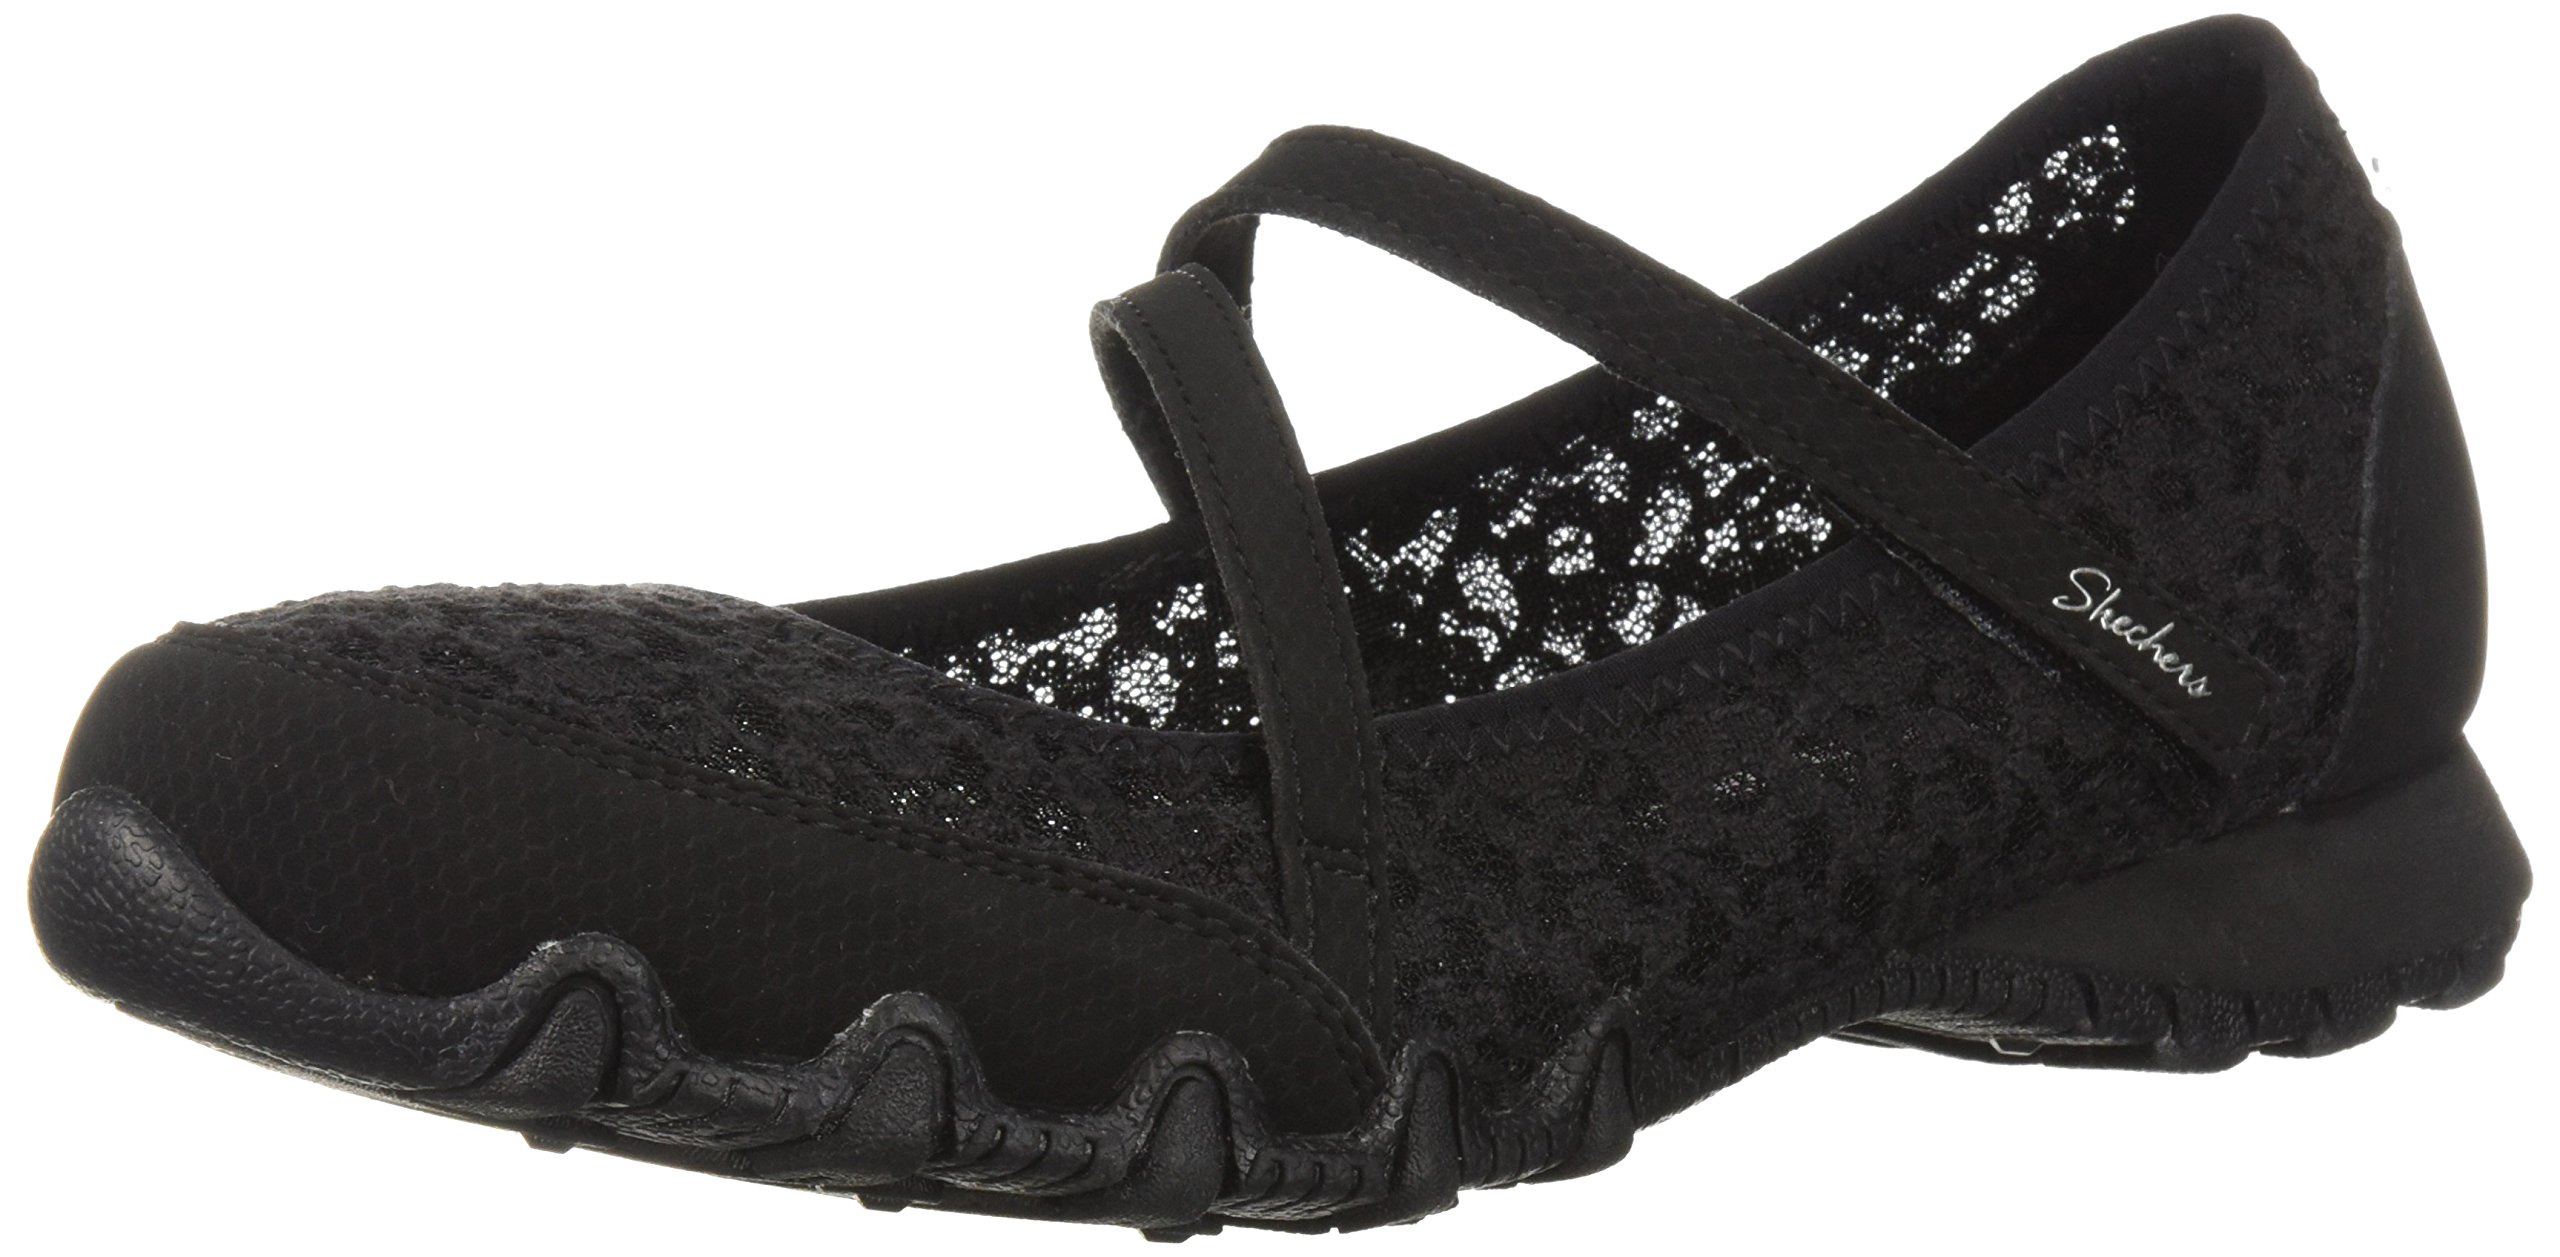 Skechers Women's Bikers-Provocative Laced Upper Detail, a Relaxed Fit Mary Jane Flat, Black, 7 M US